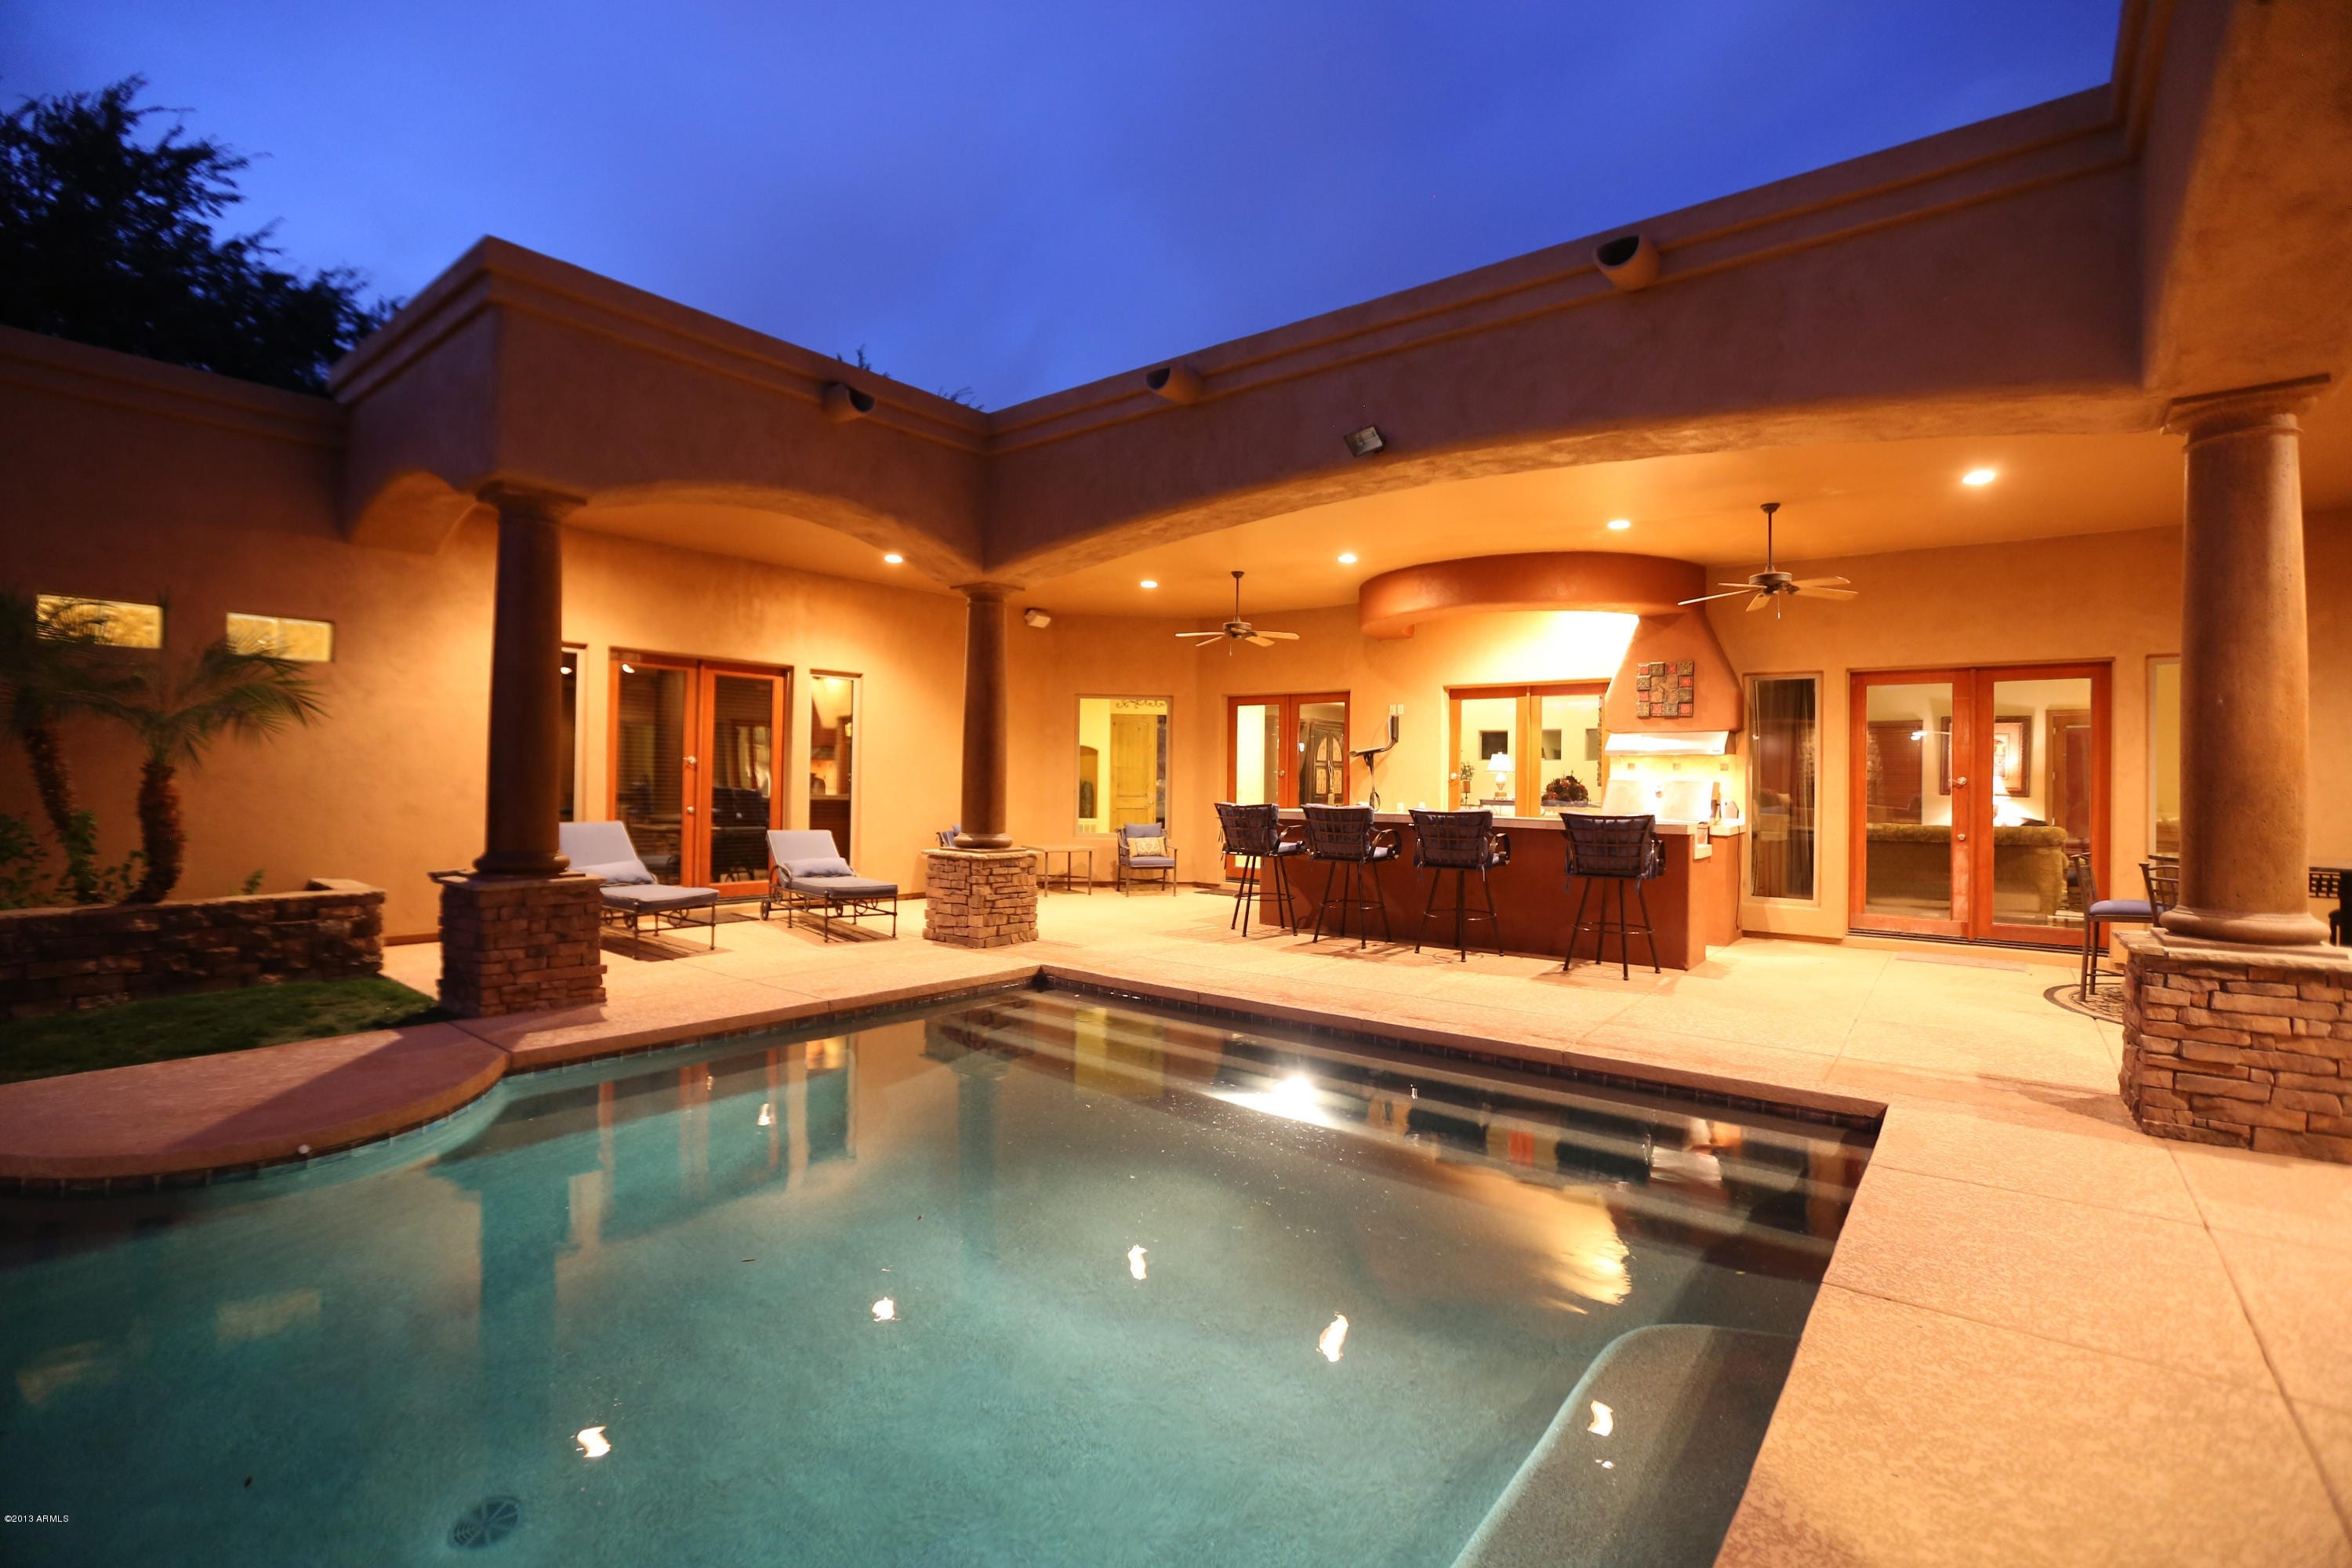 Houses for sale in scottsdale arizona scottsdale real estate arizona Model home furniture auction phoenix az